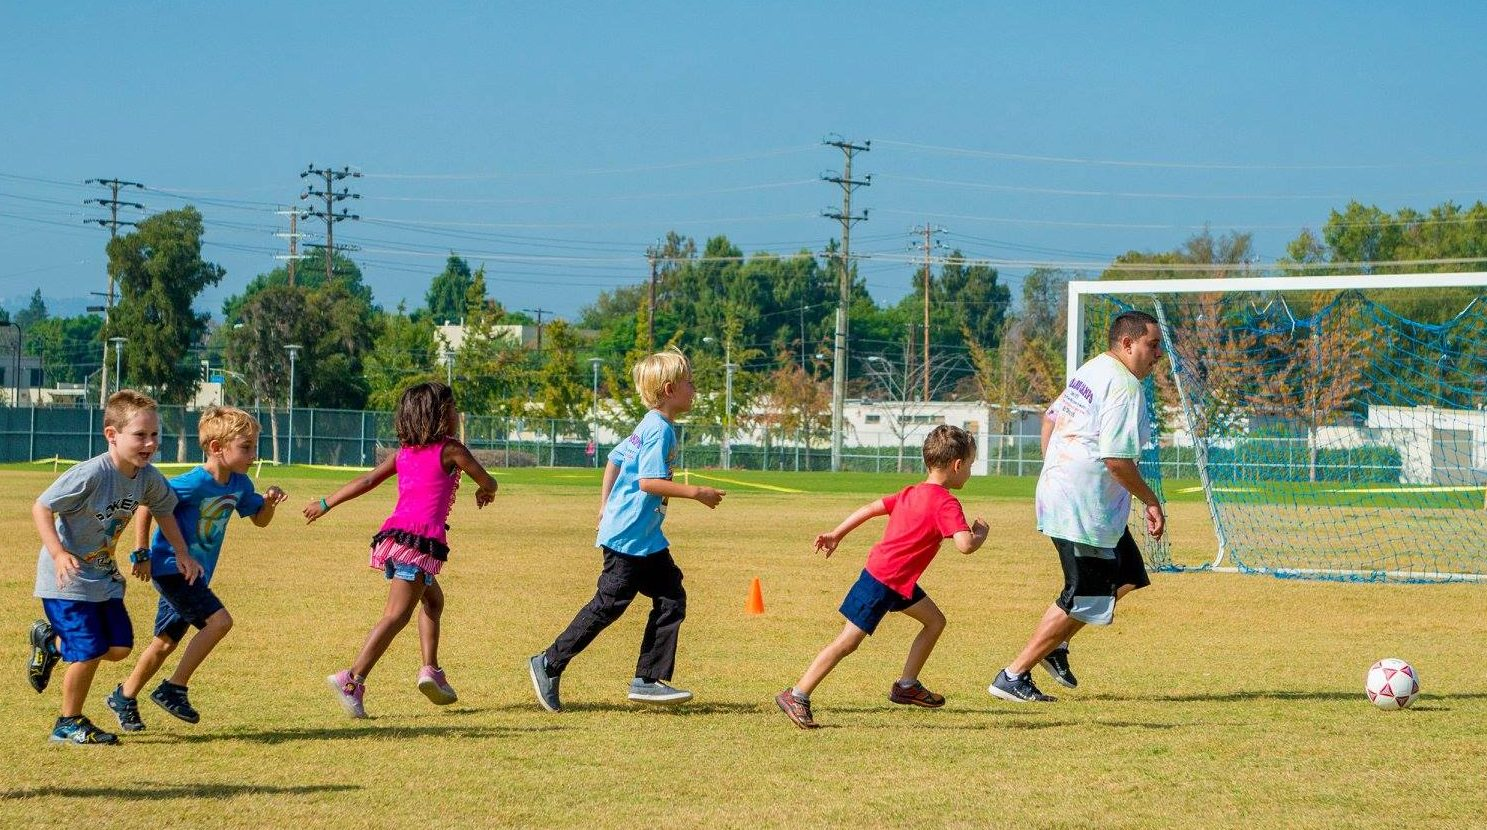 https://monarchcamps.com/wp-content/uploads/2018/01/monarch-camps-summer-camp-los-angeles-soccer-camp-children-chasing-soccer-ball-on-soccer-field.jpg